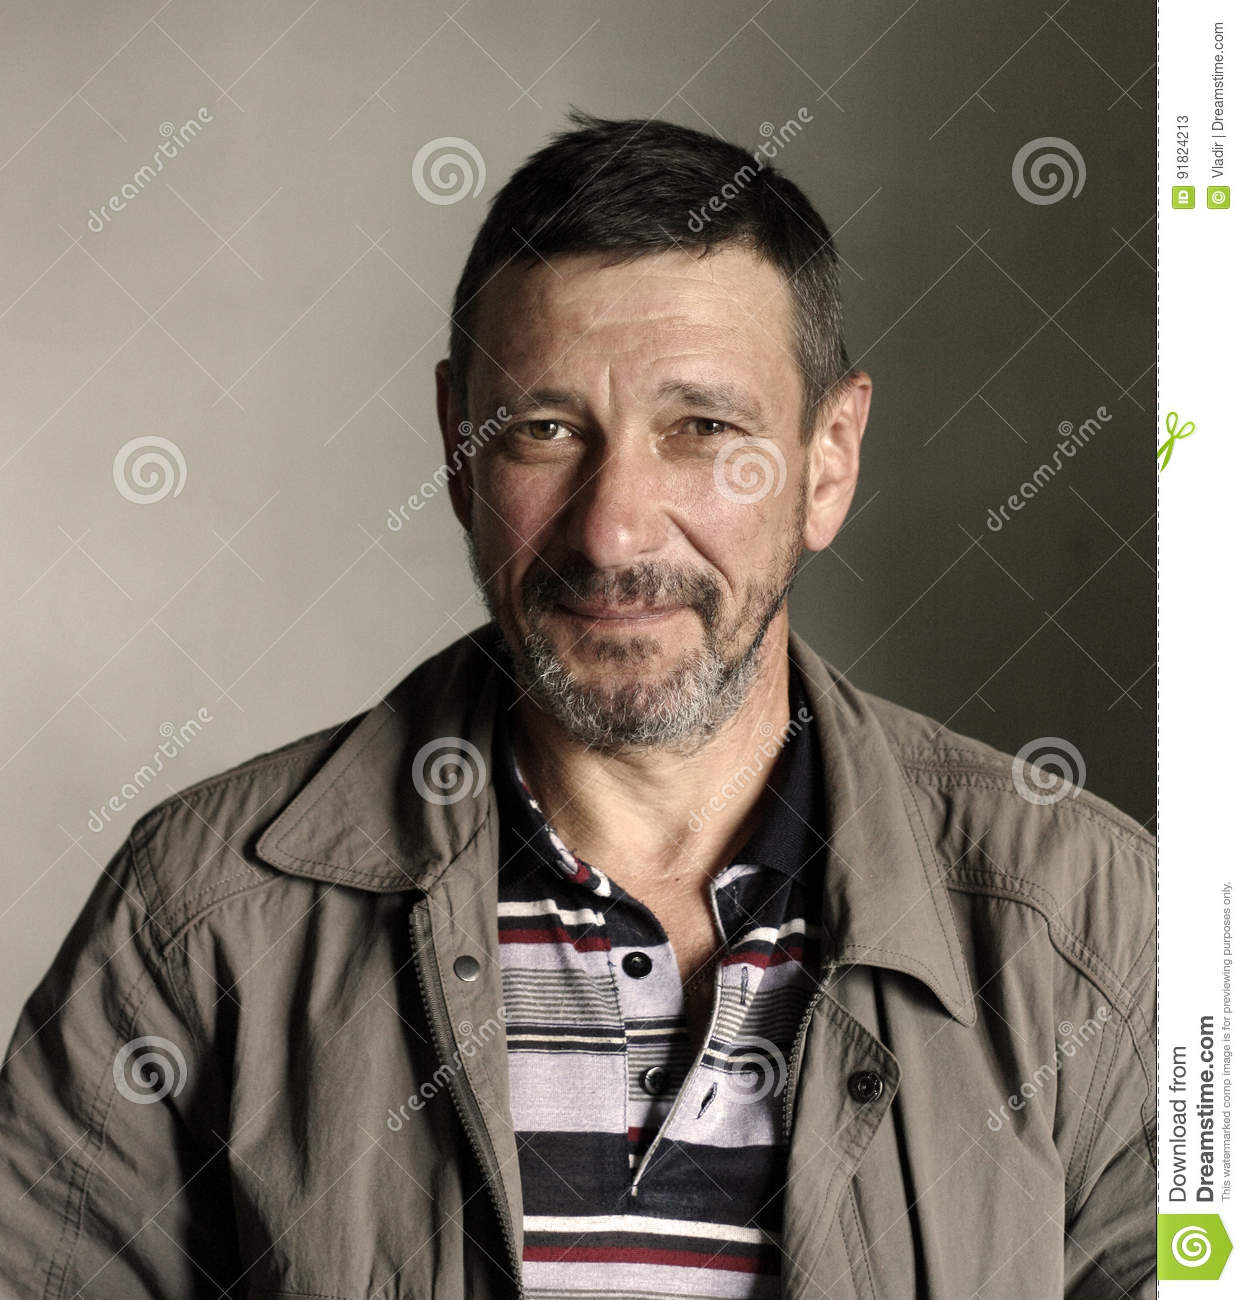 Portrait Of Bearded Man With Mocking Face Stock Image Image Of